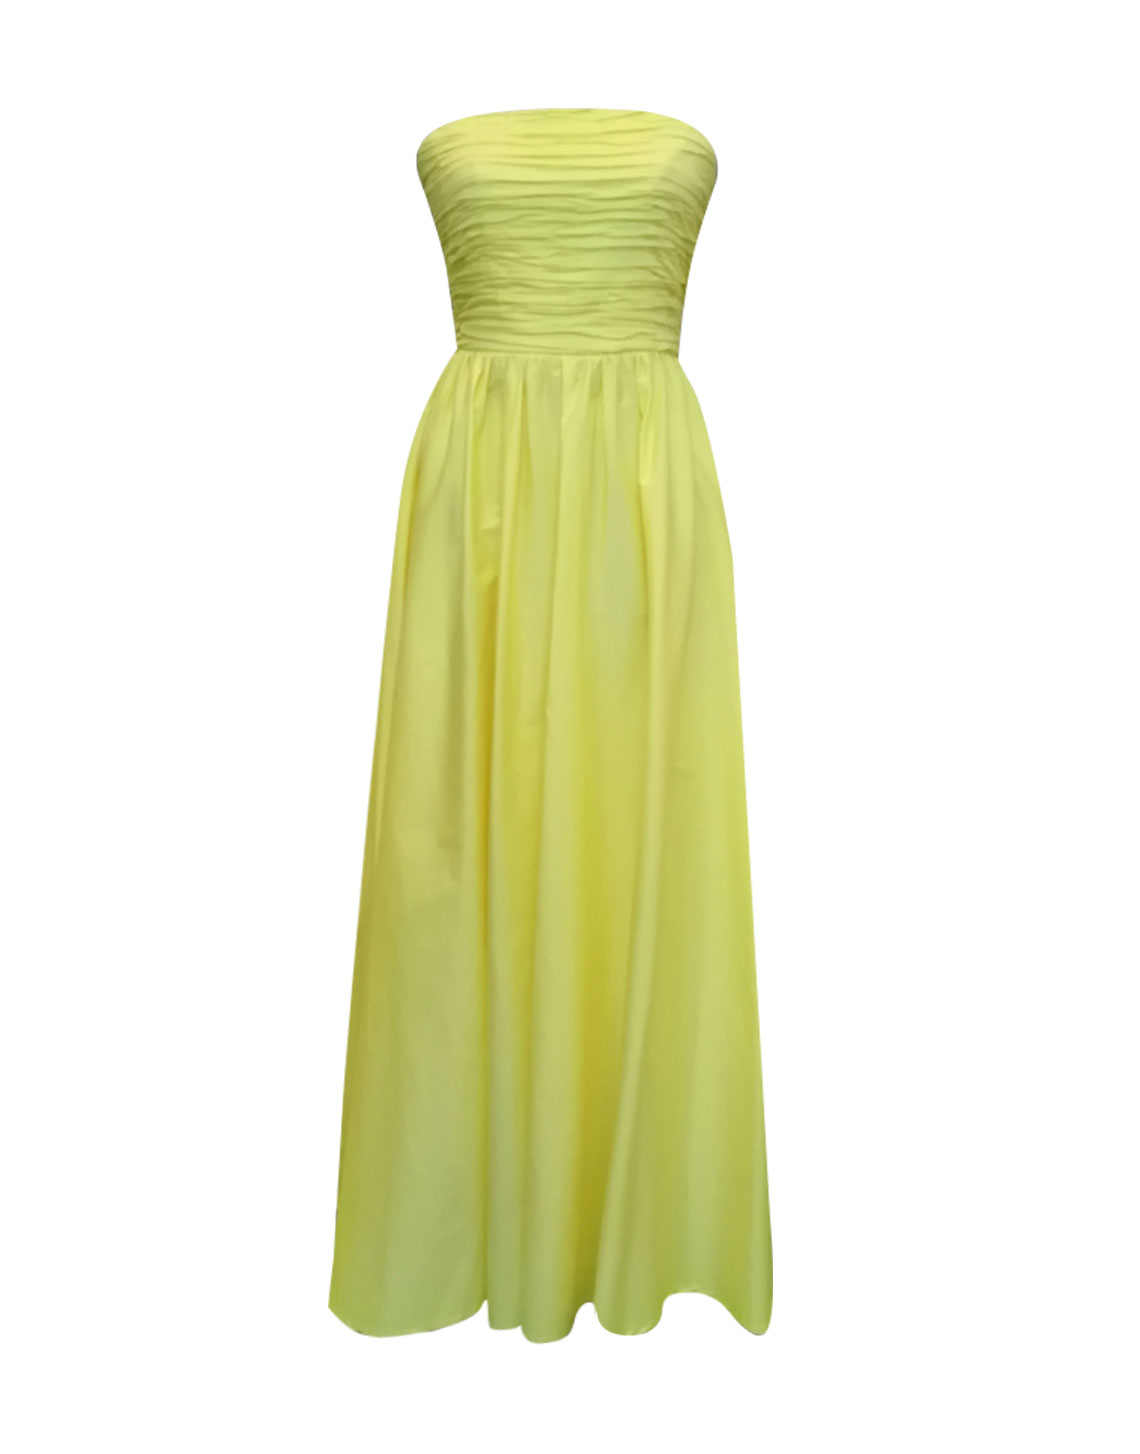 North Dress - Yellow by Jessica K on curated-crowd.com